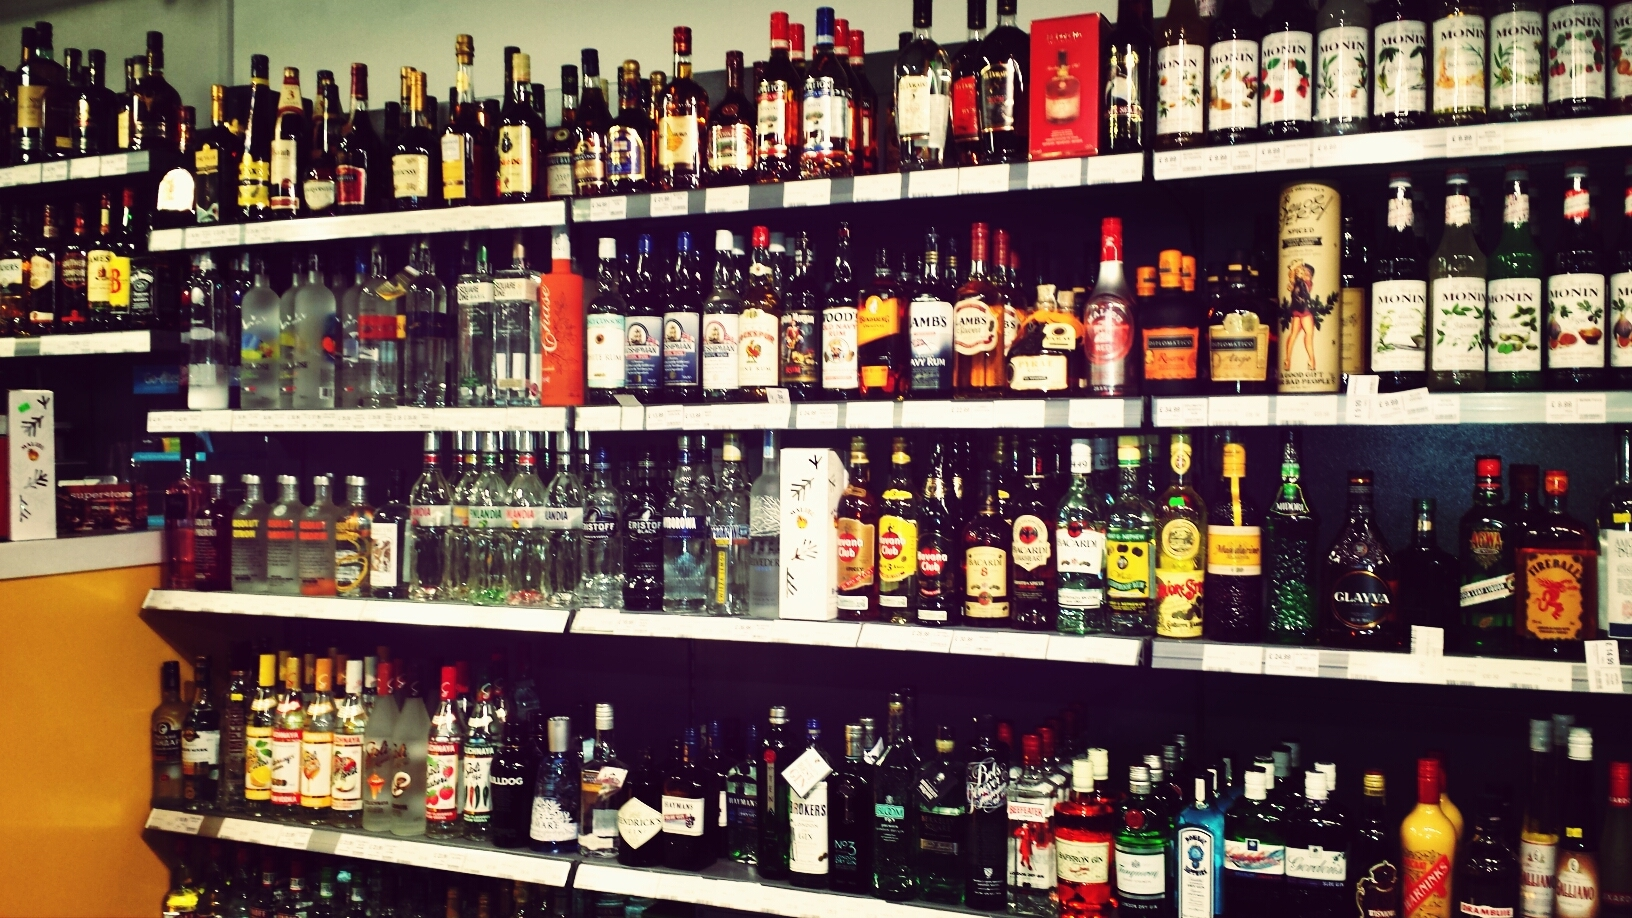 Bottles of liquor on store shelves.